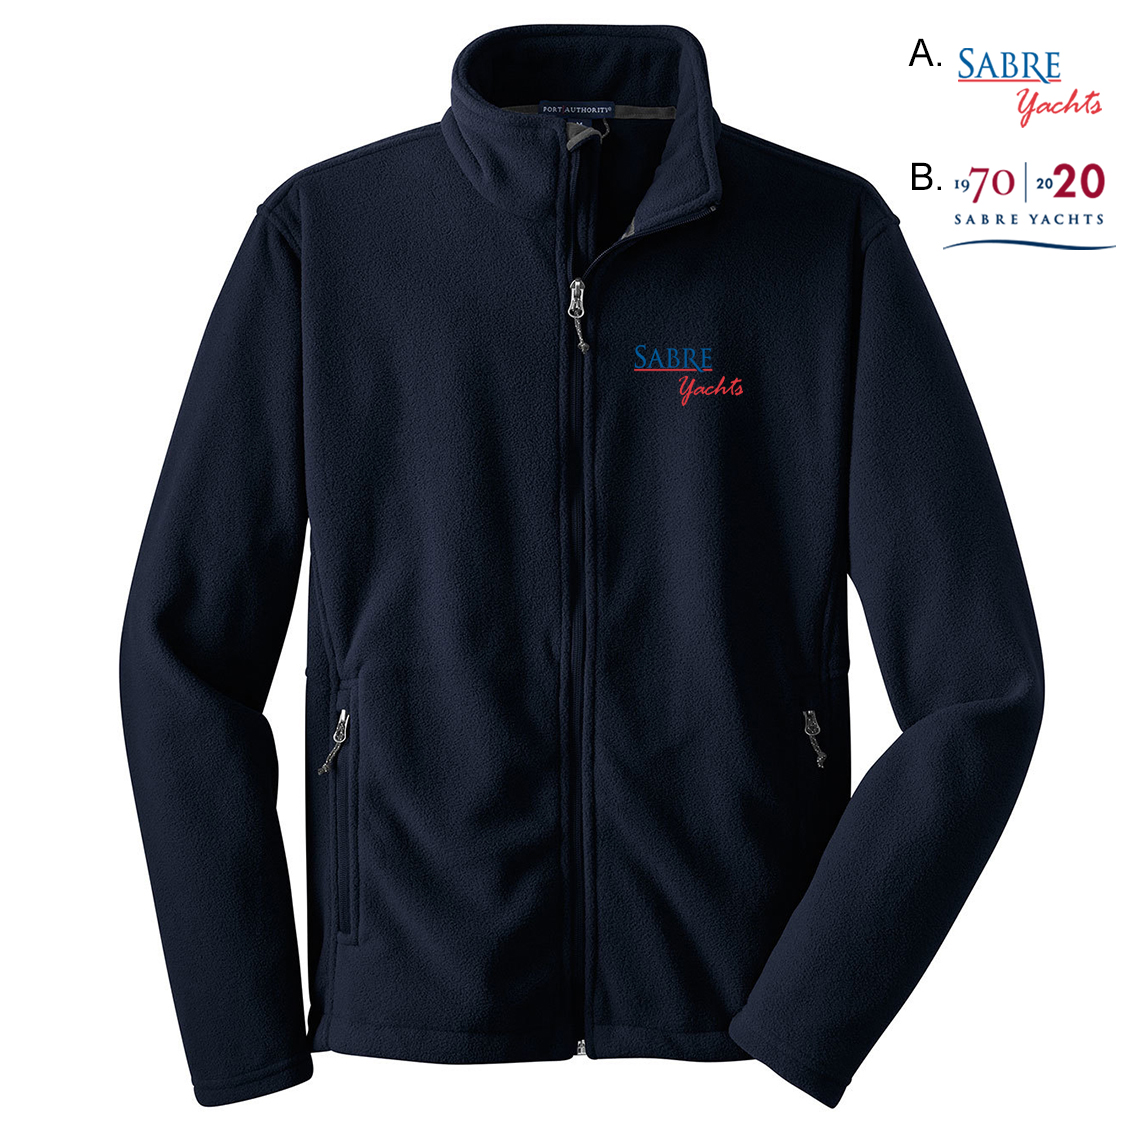 Sabre Yachts - Men's Value Fleece Jacket